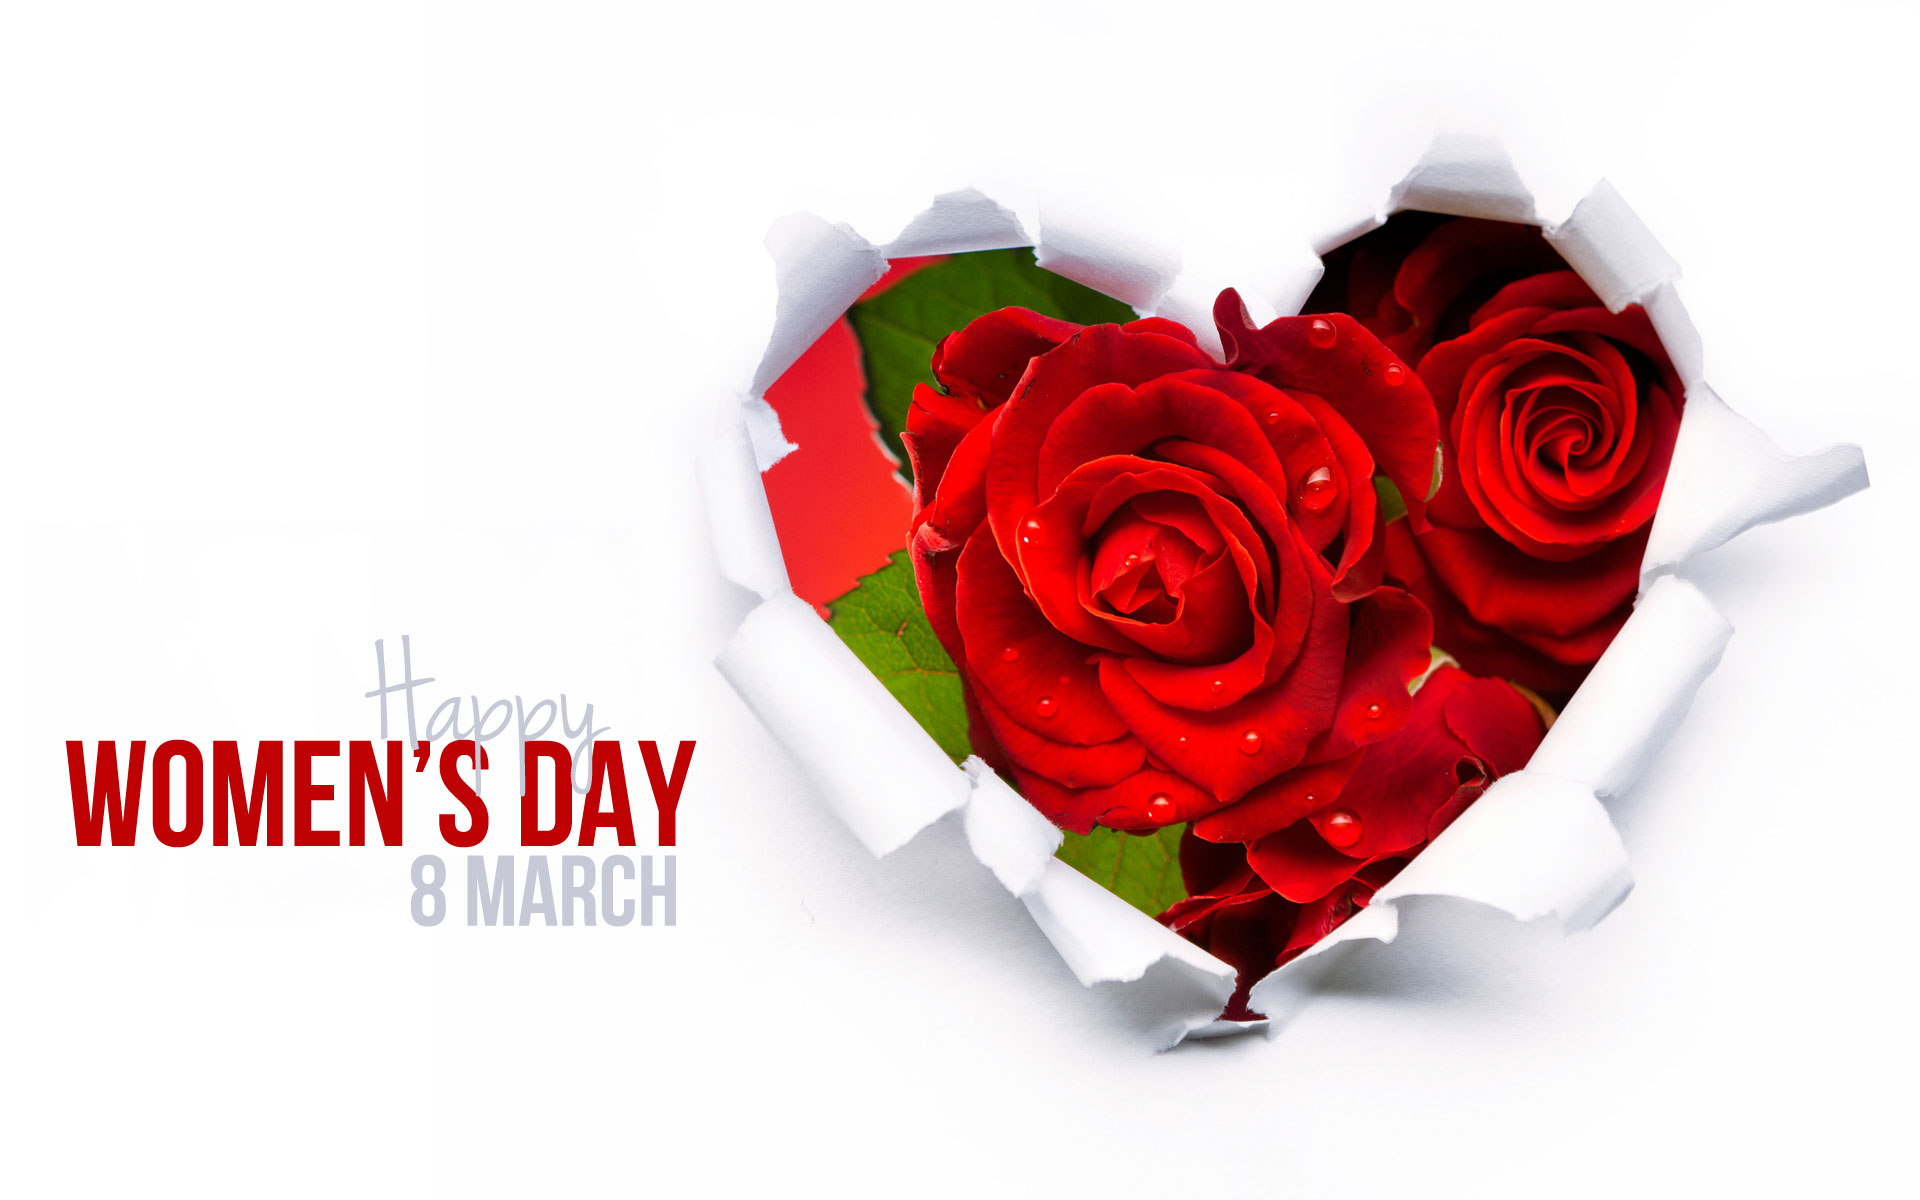 Latest Women's Day Image